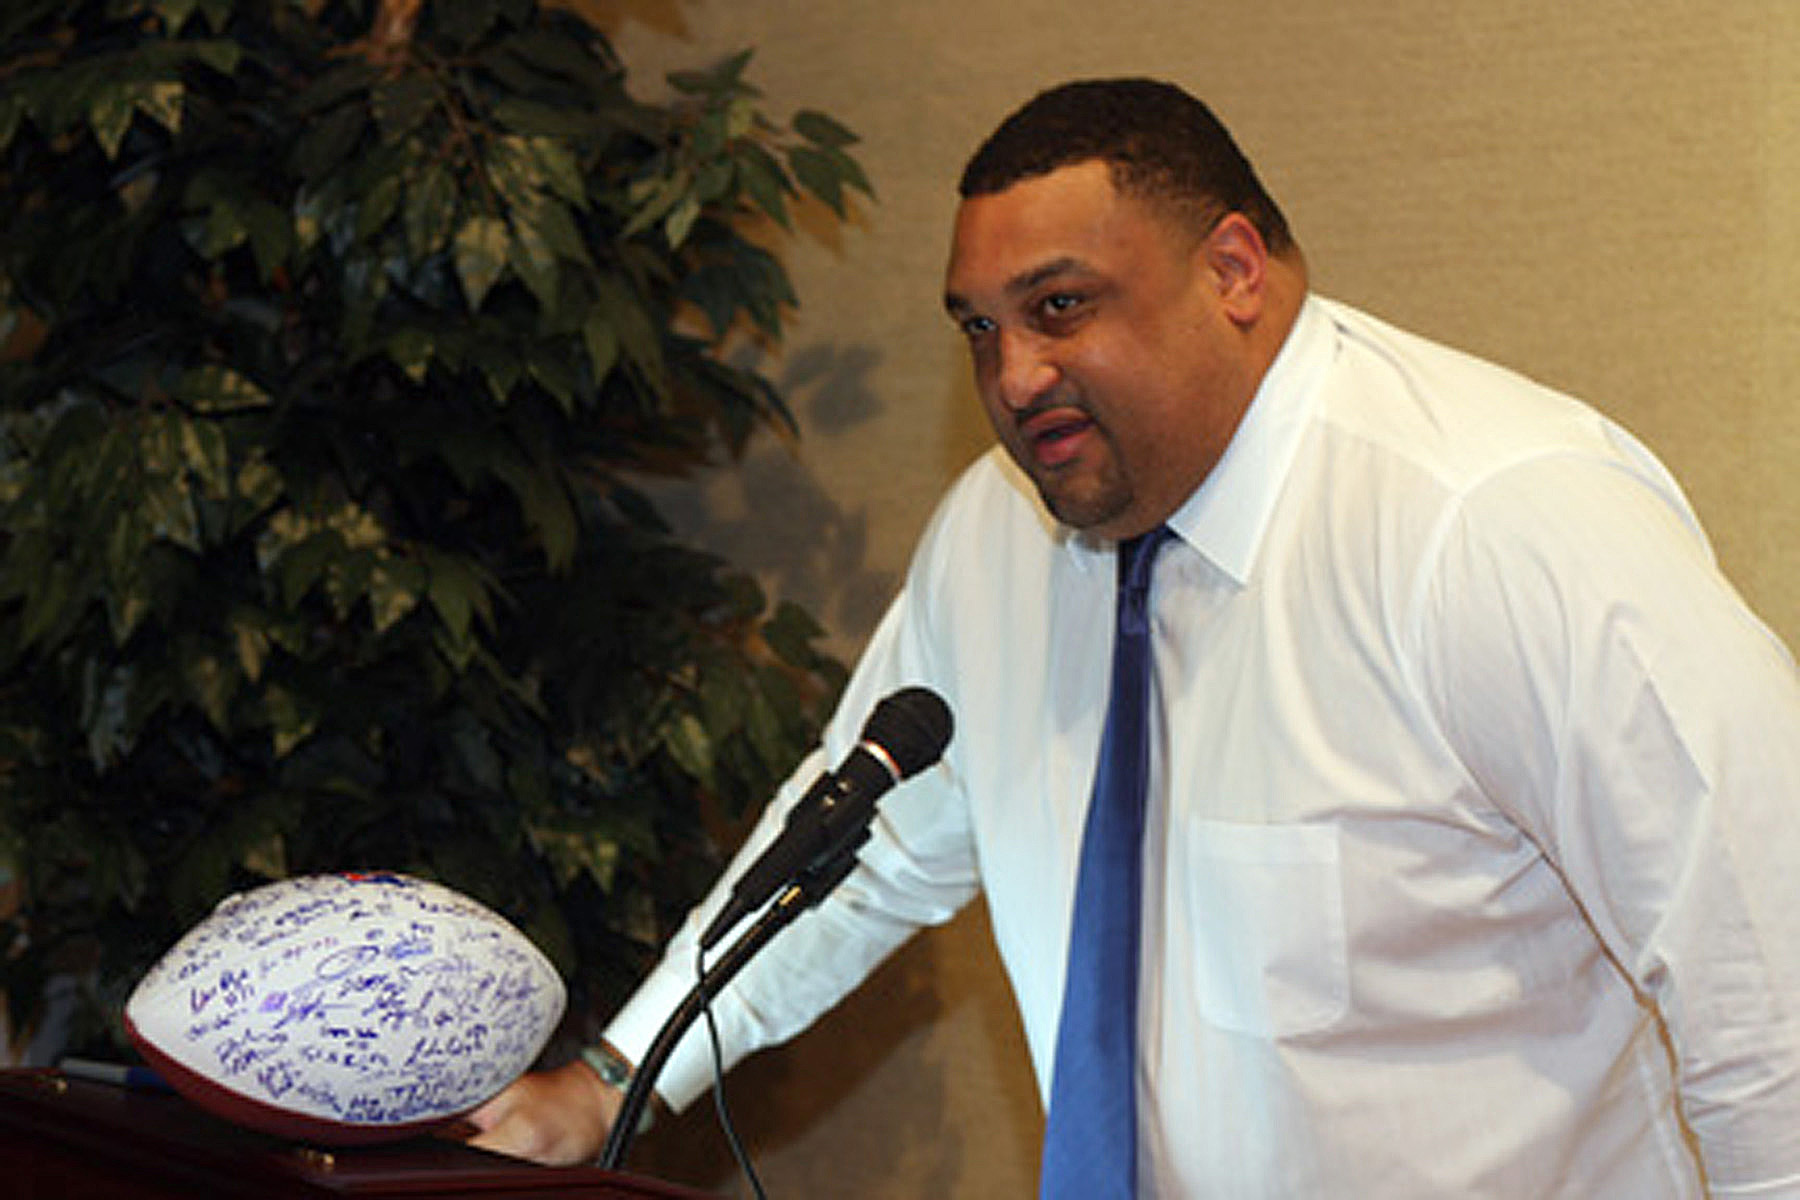 Willie Roaf was a Pro Football Hall of Fame Finalist this past year. Here he is seen speaking at the Louisiana Tech Football Banquet.